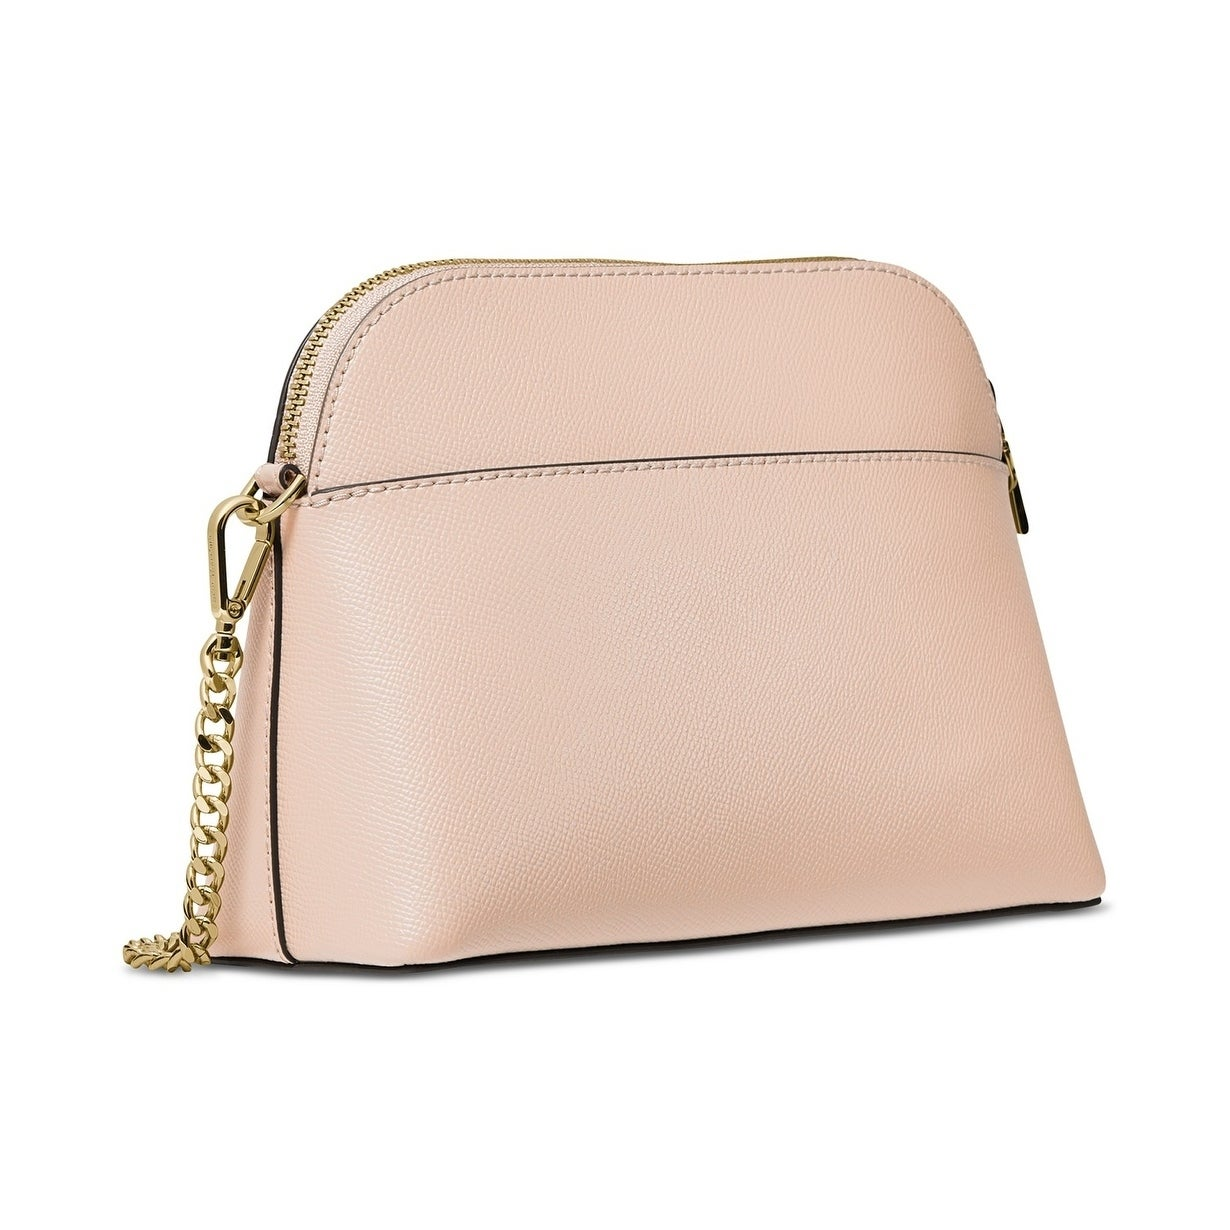 15f656f69cb3 Shop MICHAEL Michael Kors Crossgrain Leather Dome Crossbody Pale Pink/Gold  - Free Shipping Today - Overstock - 28021700